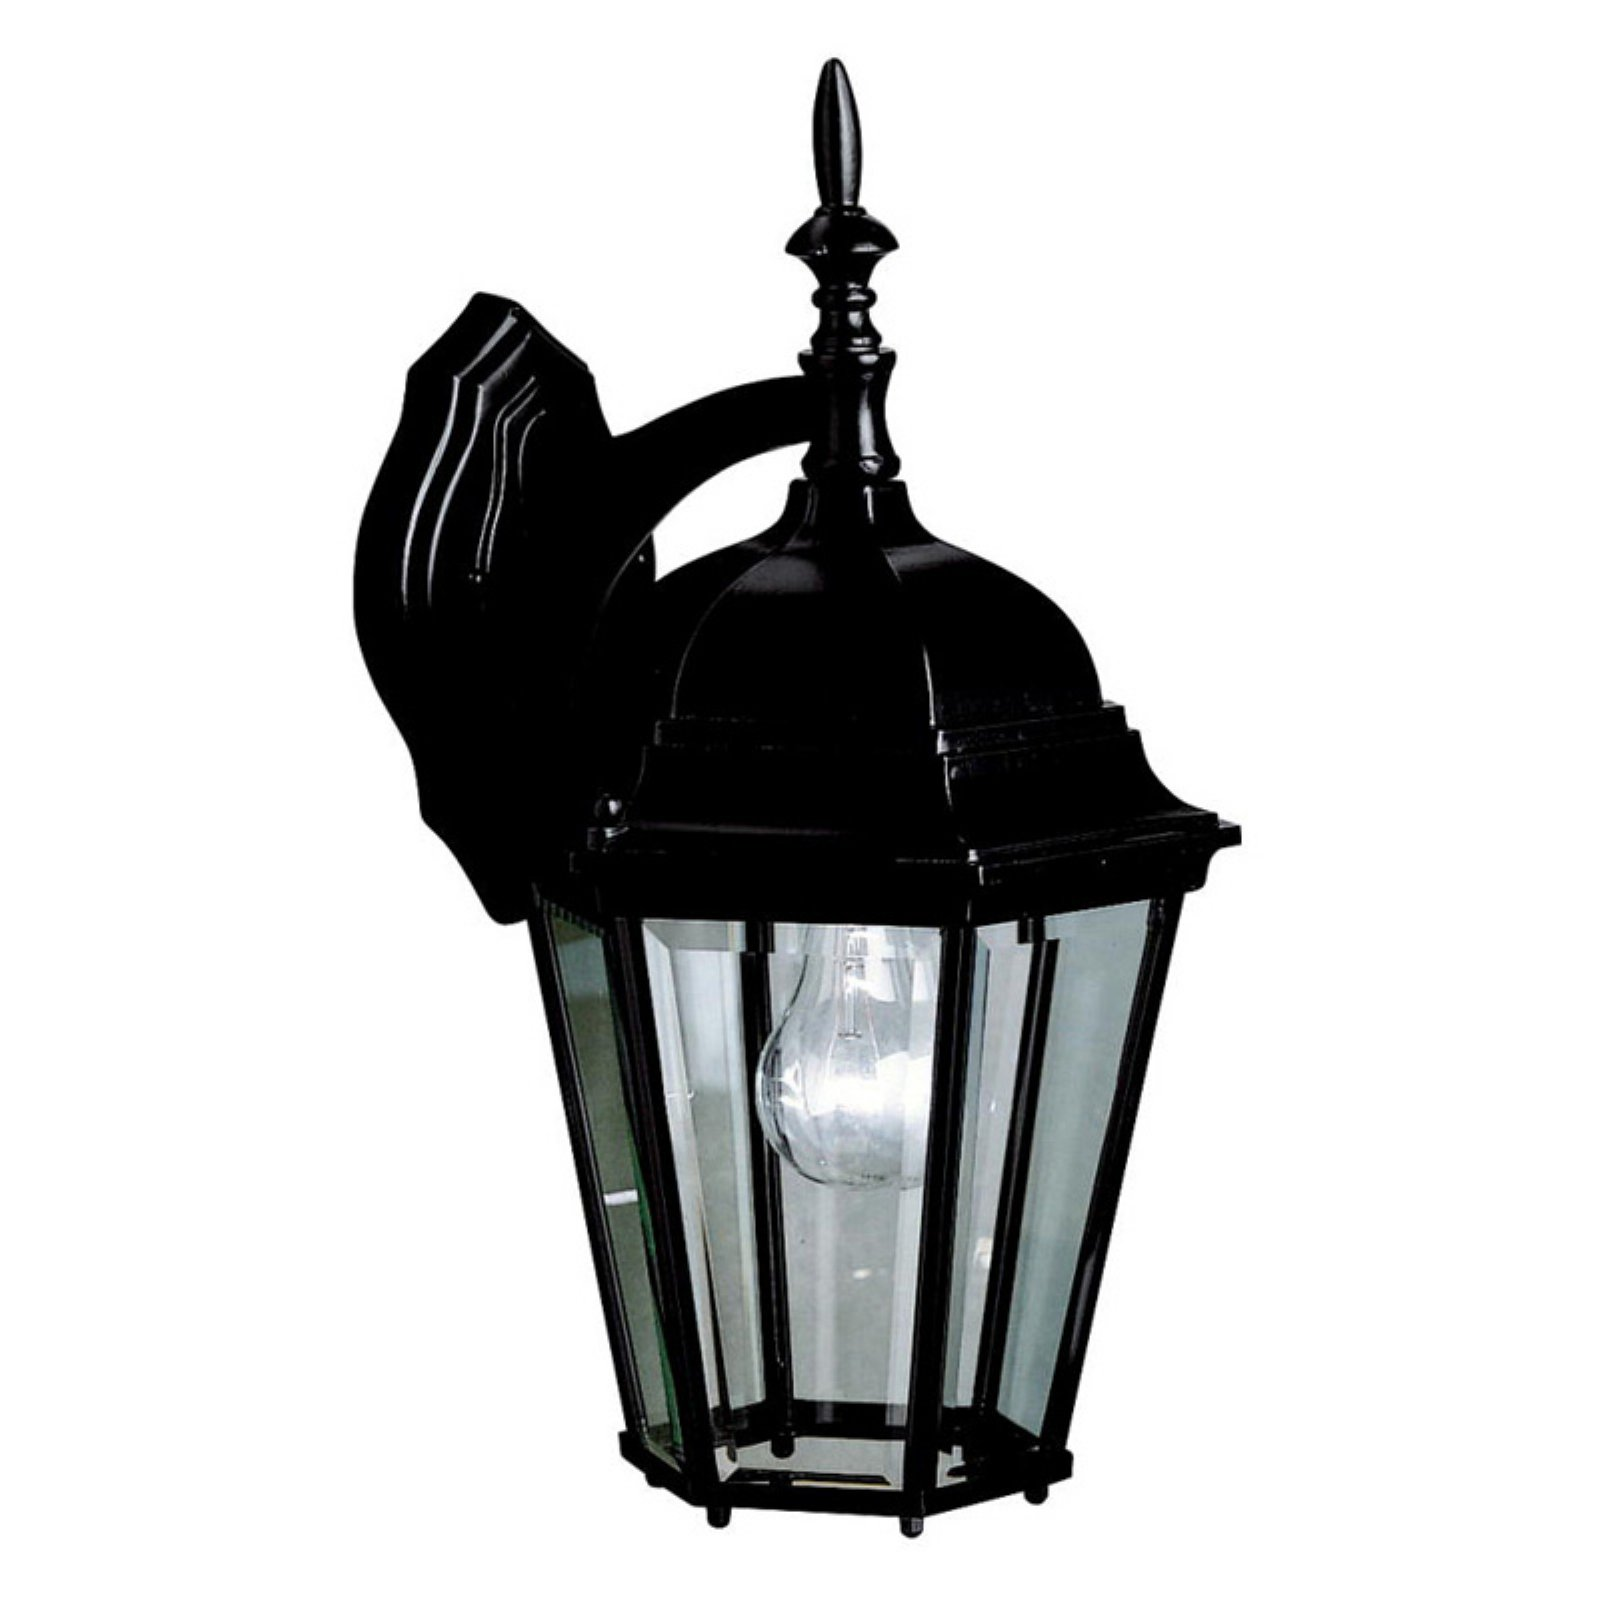 Kichler Madison 9655 Outdoor Wall Lantern - 9.25 in.